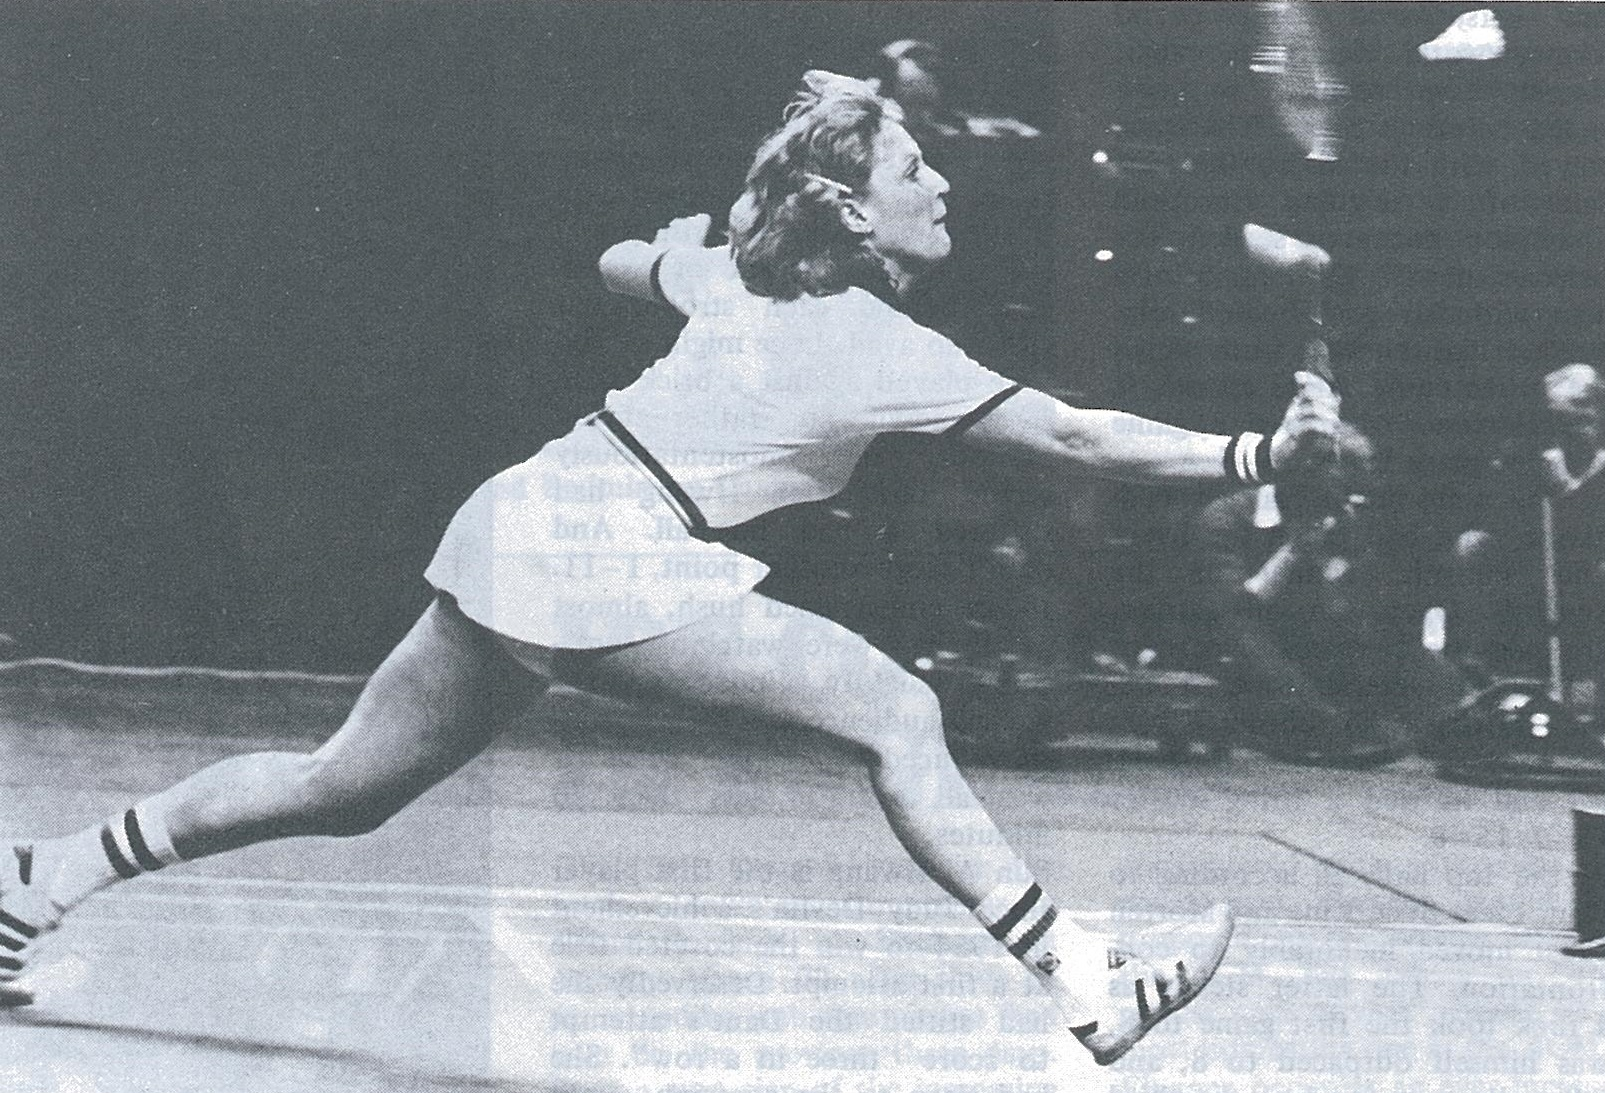 Nora perry - swedish open - wb june 1981 - pic by louis ross